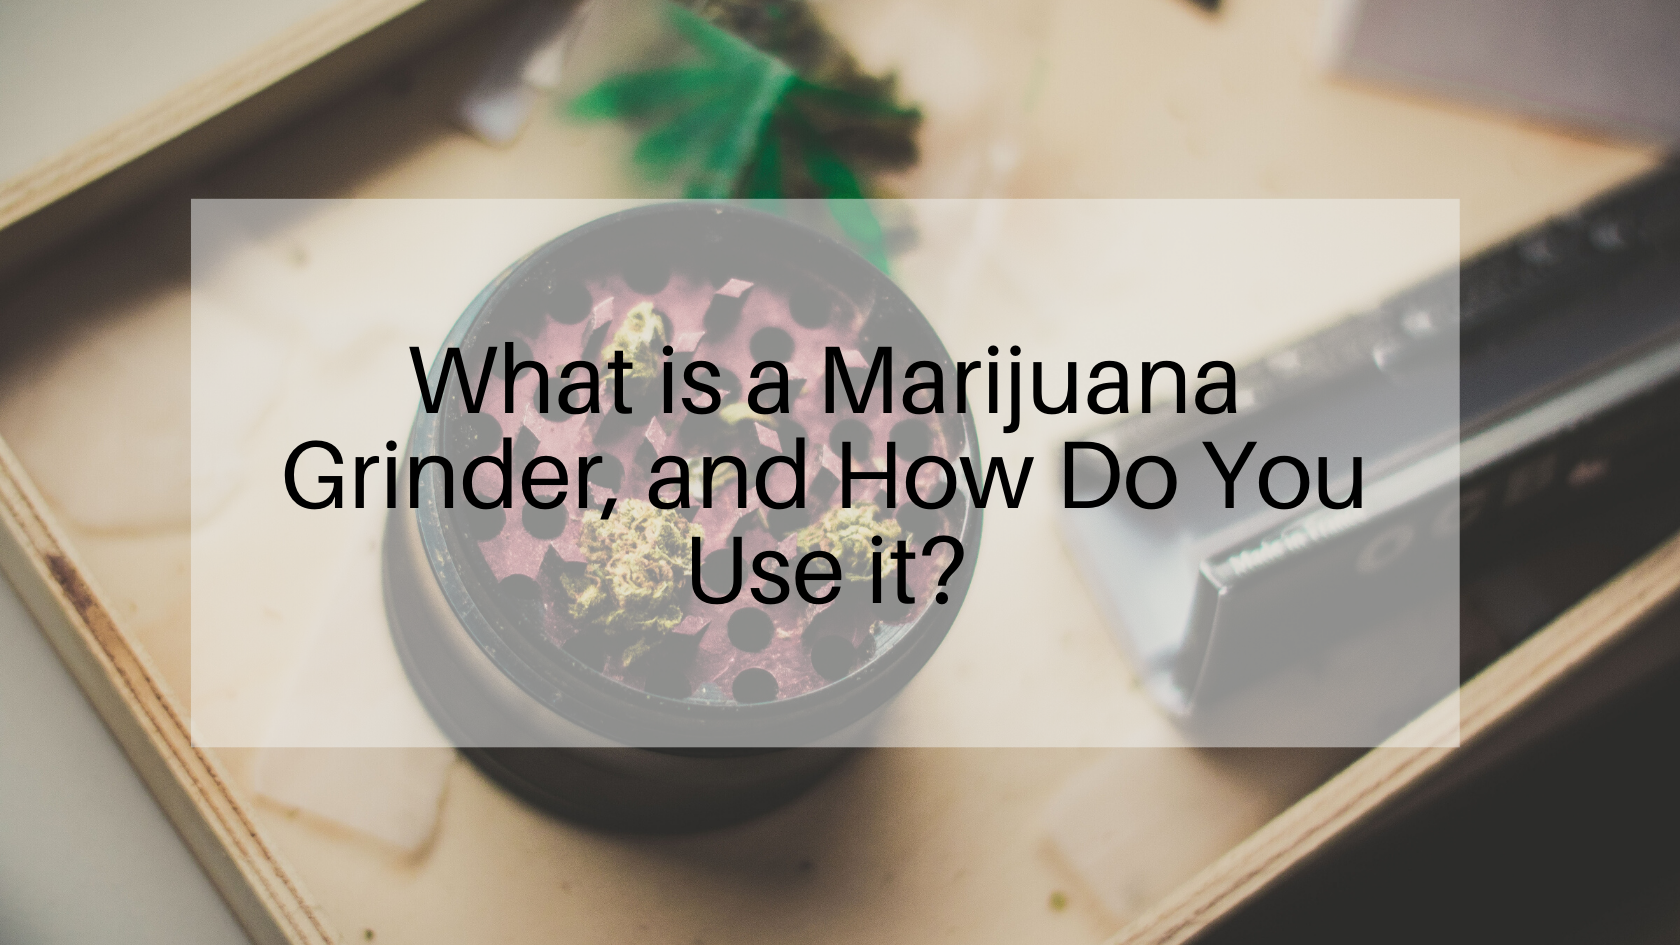 What is a Marijuana Grinder, and How Do You Use it?